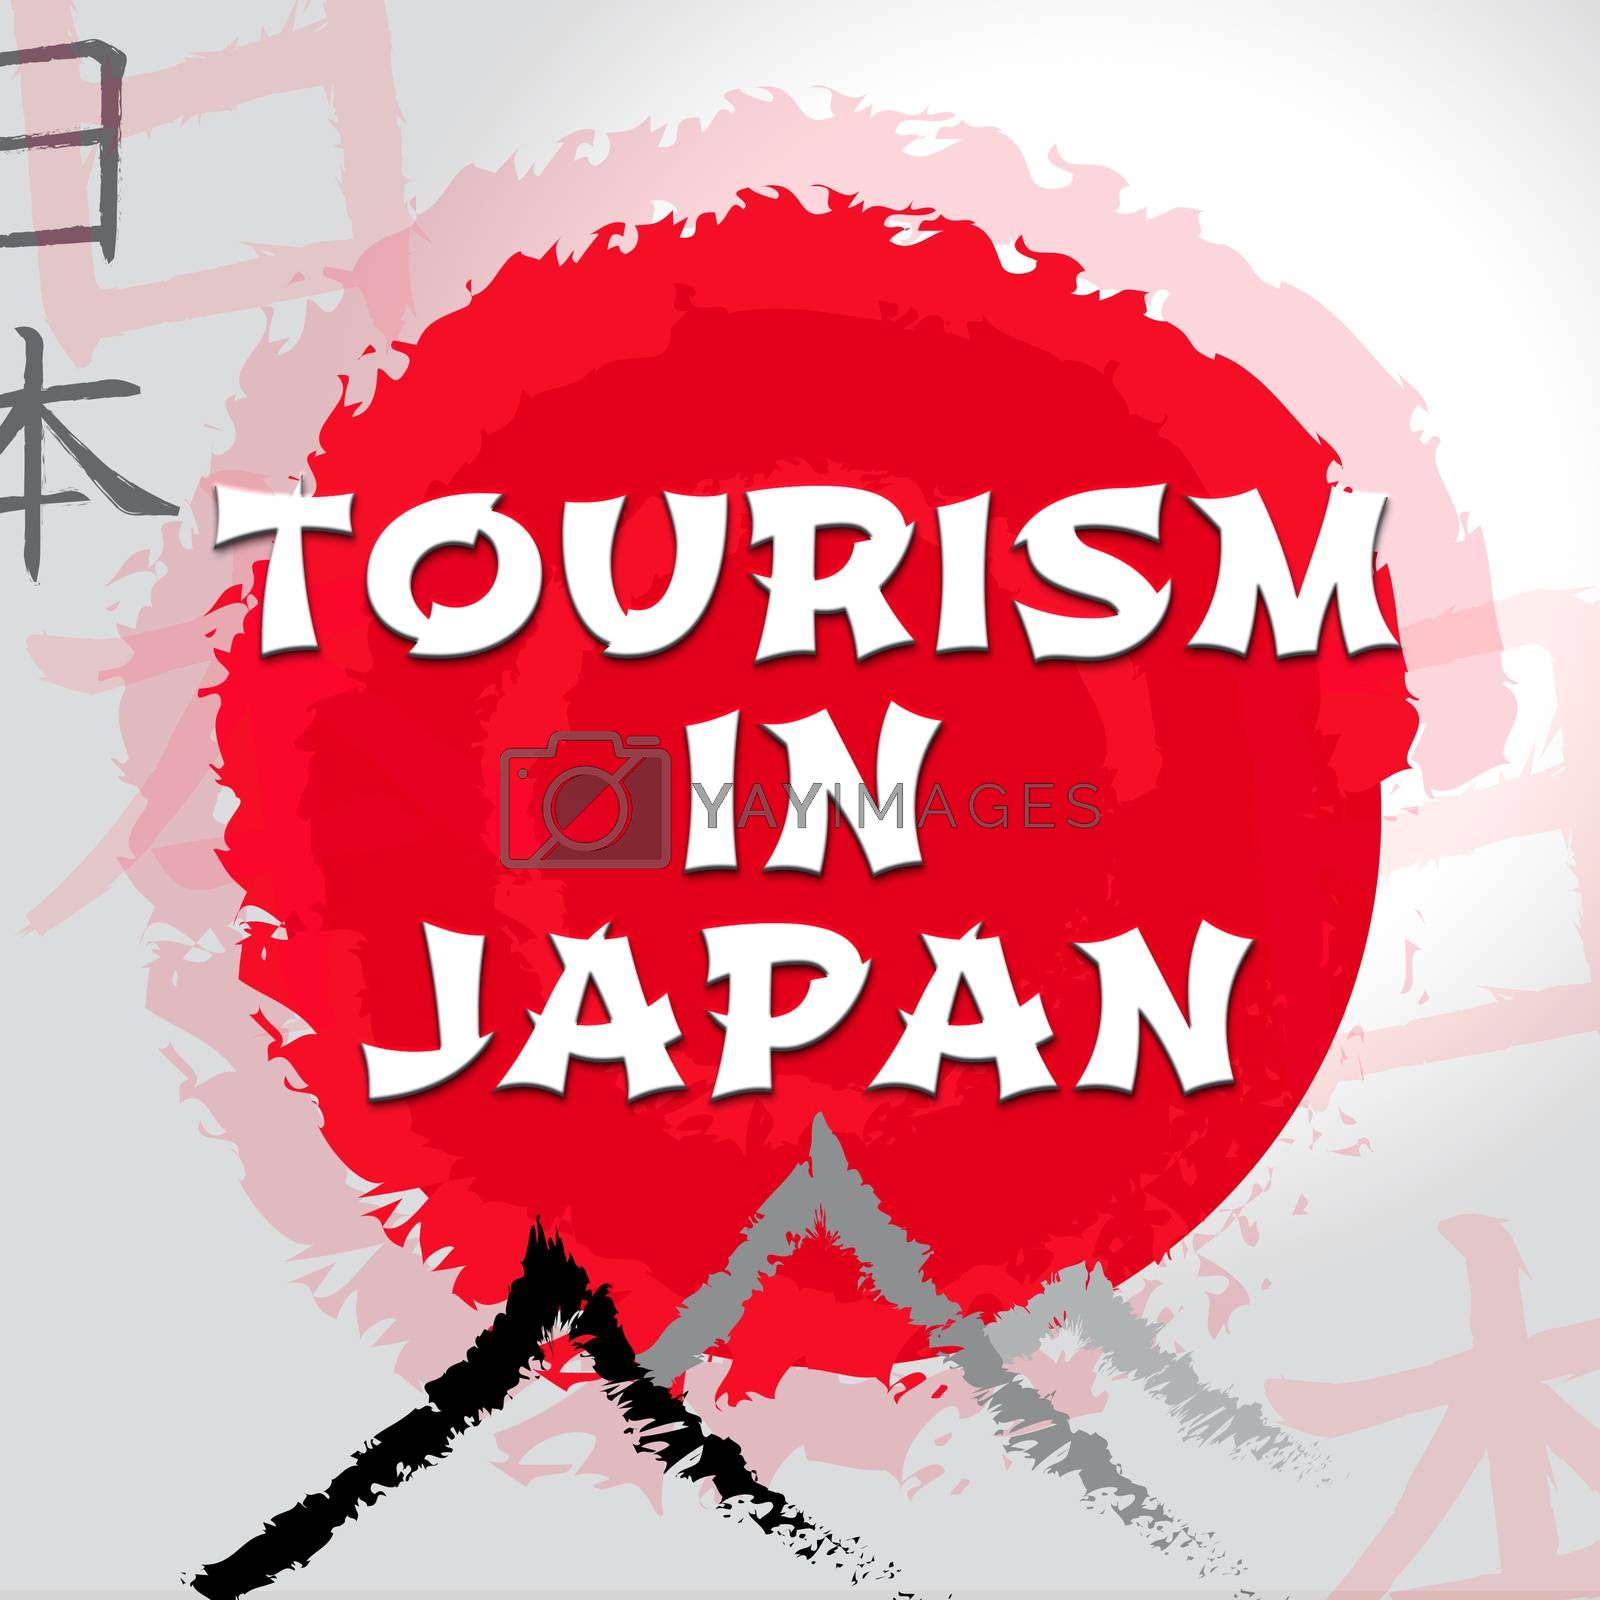 Tourism In Japan Shows Japanese Travel Or Tours